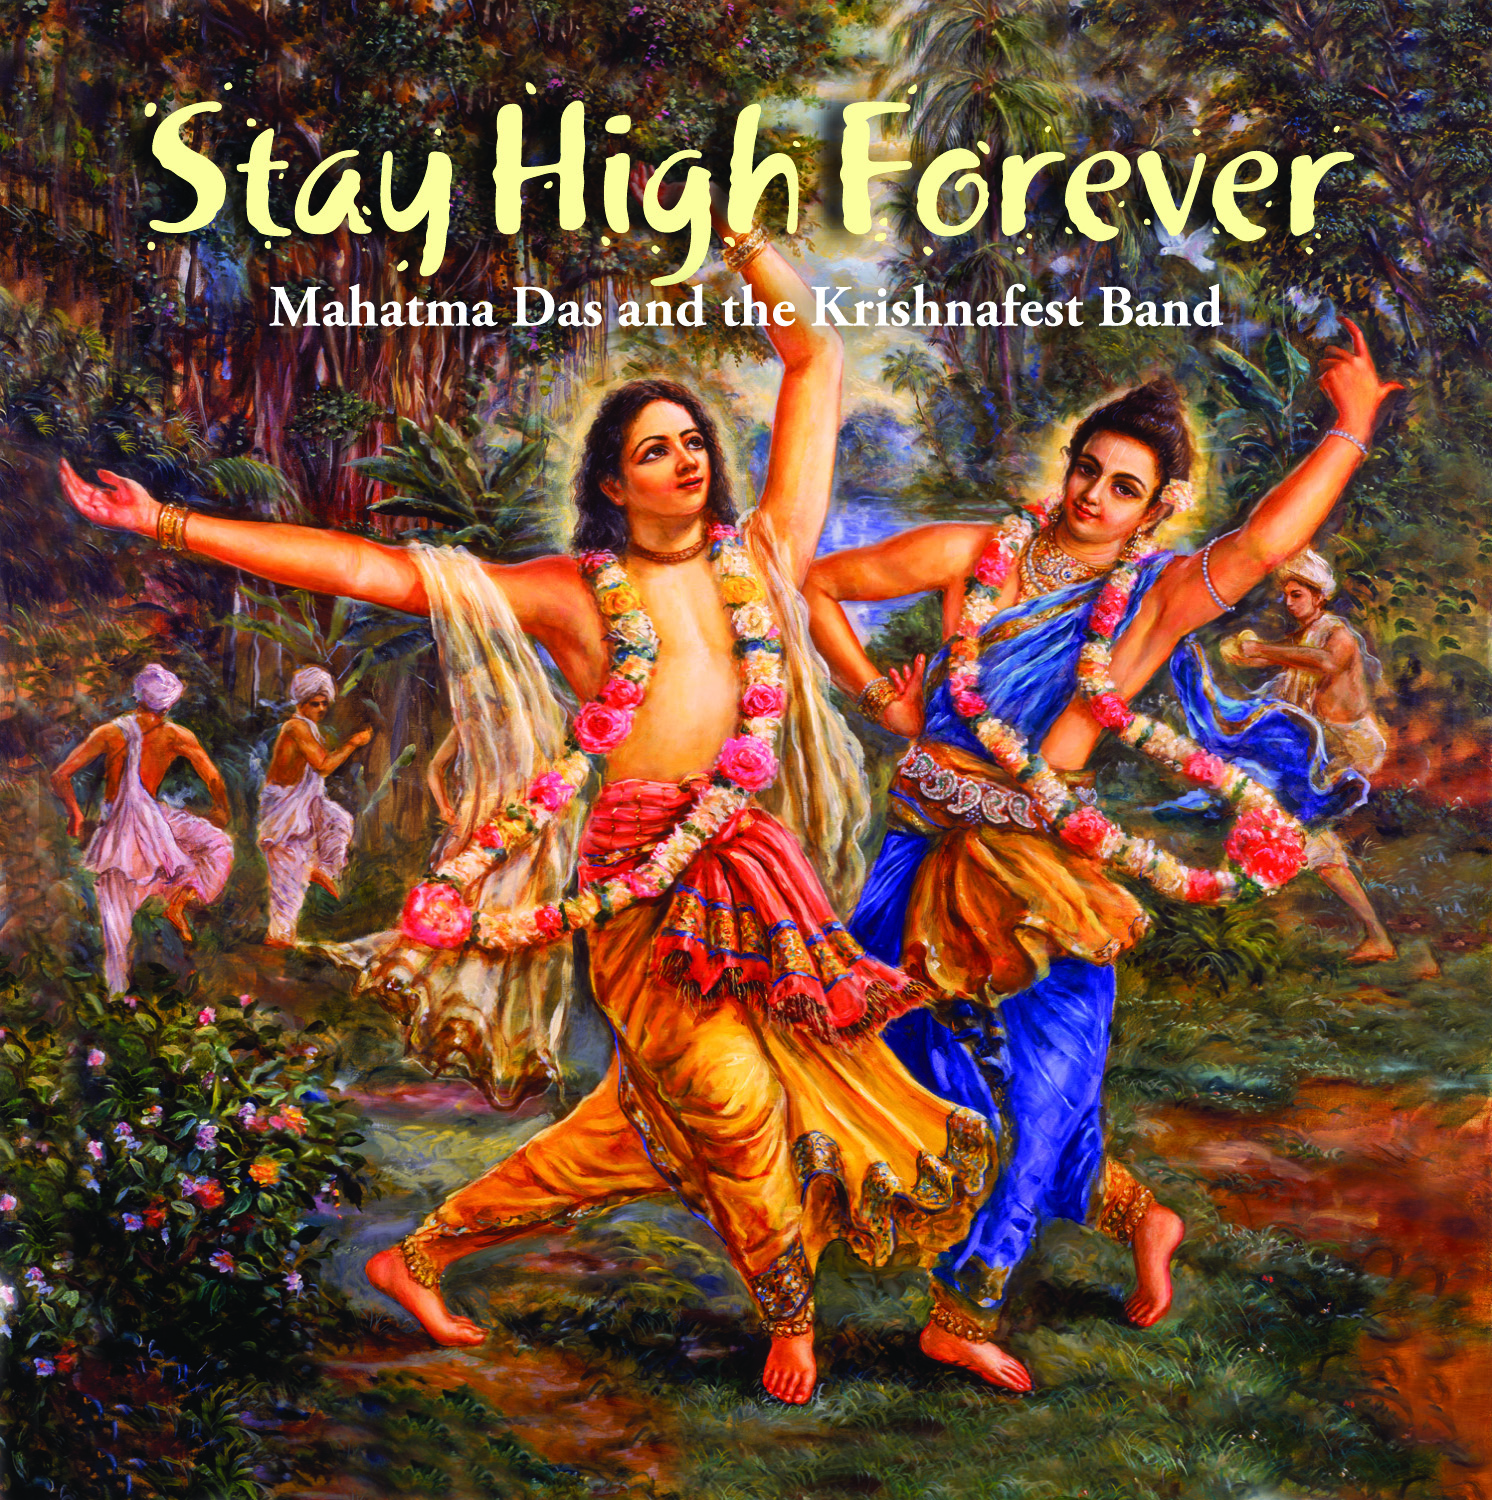 Stay_High_Forever_Mahatma_Das